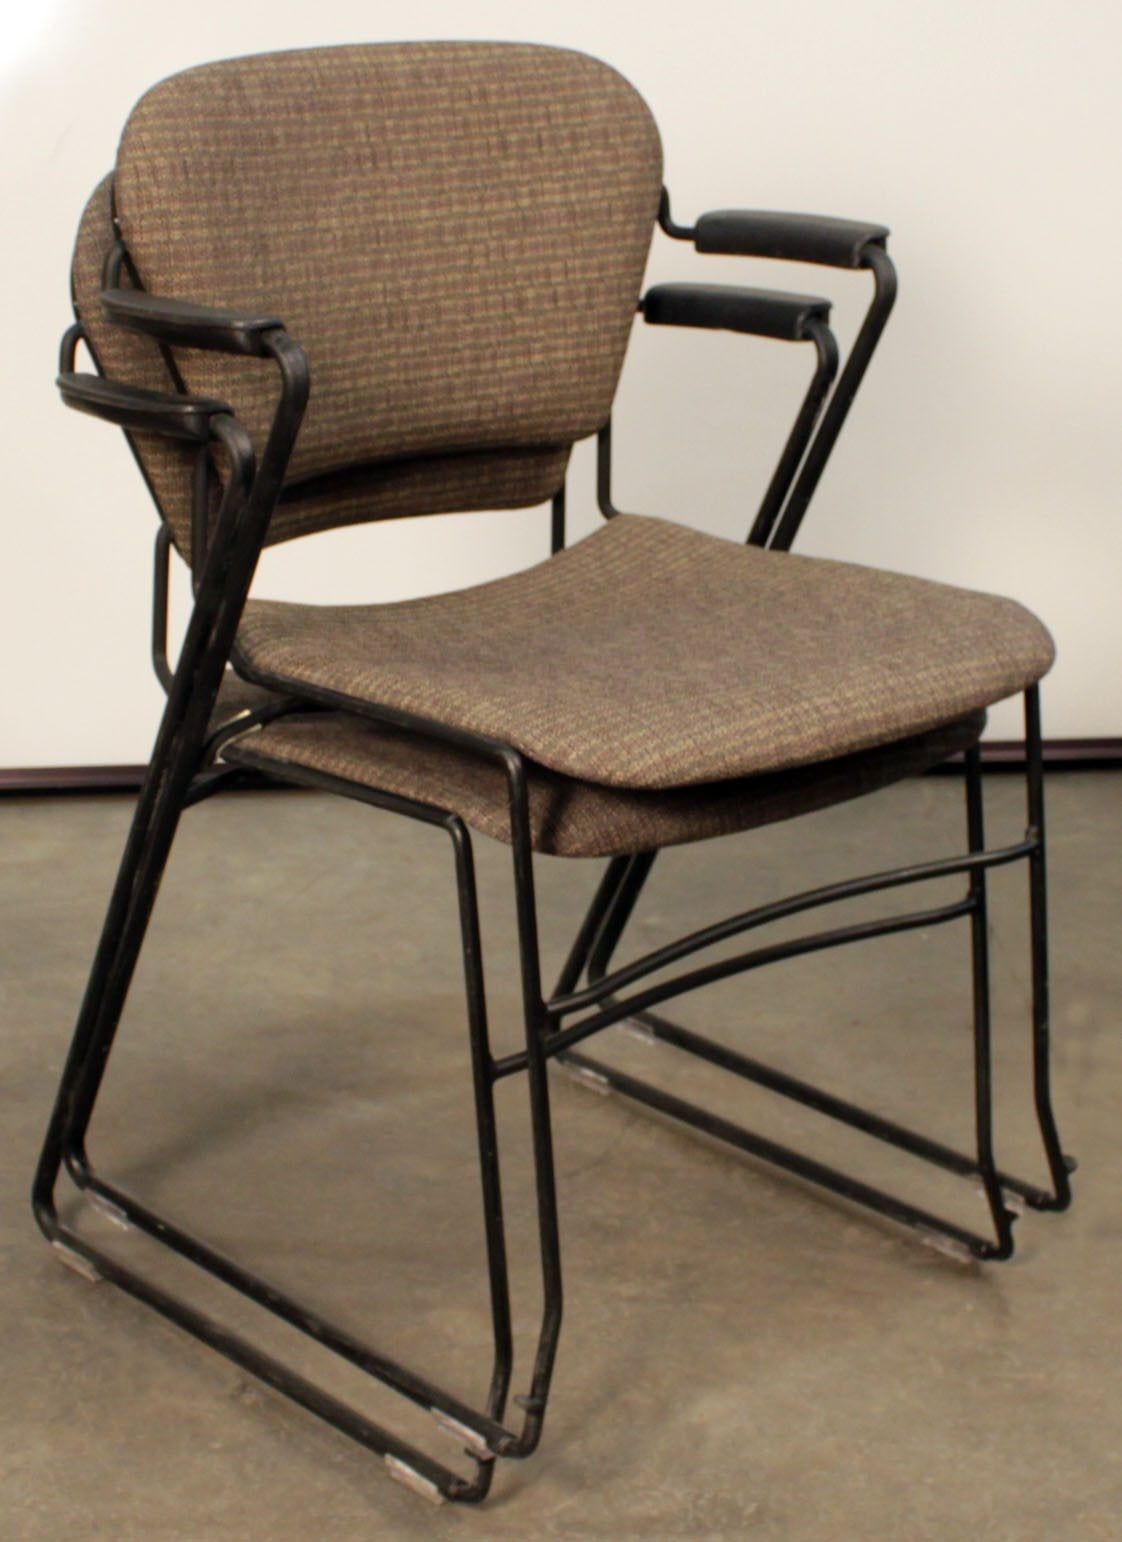 Ki Chairs Ki Perry Used Stack Chair Brown National Office